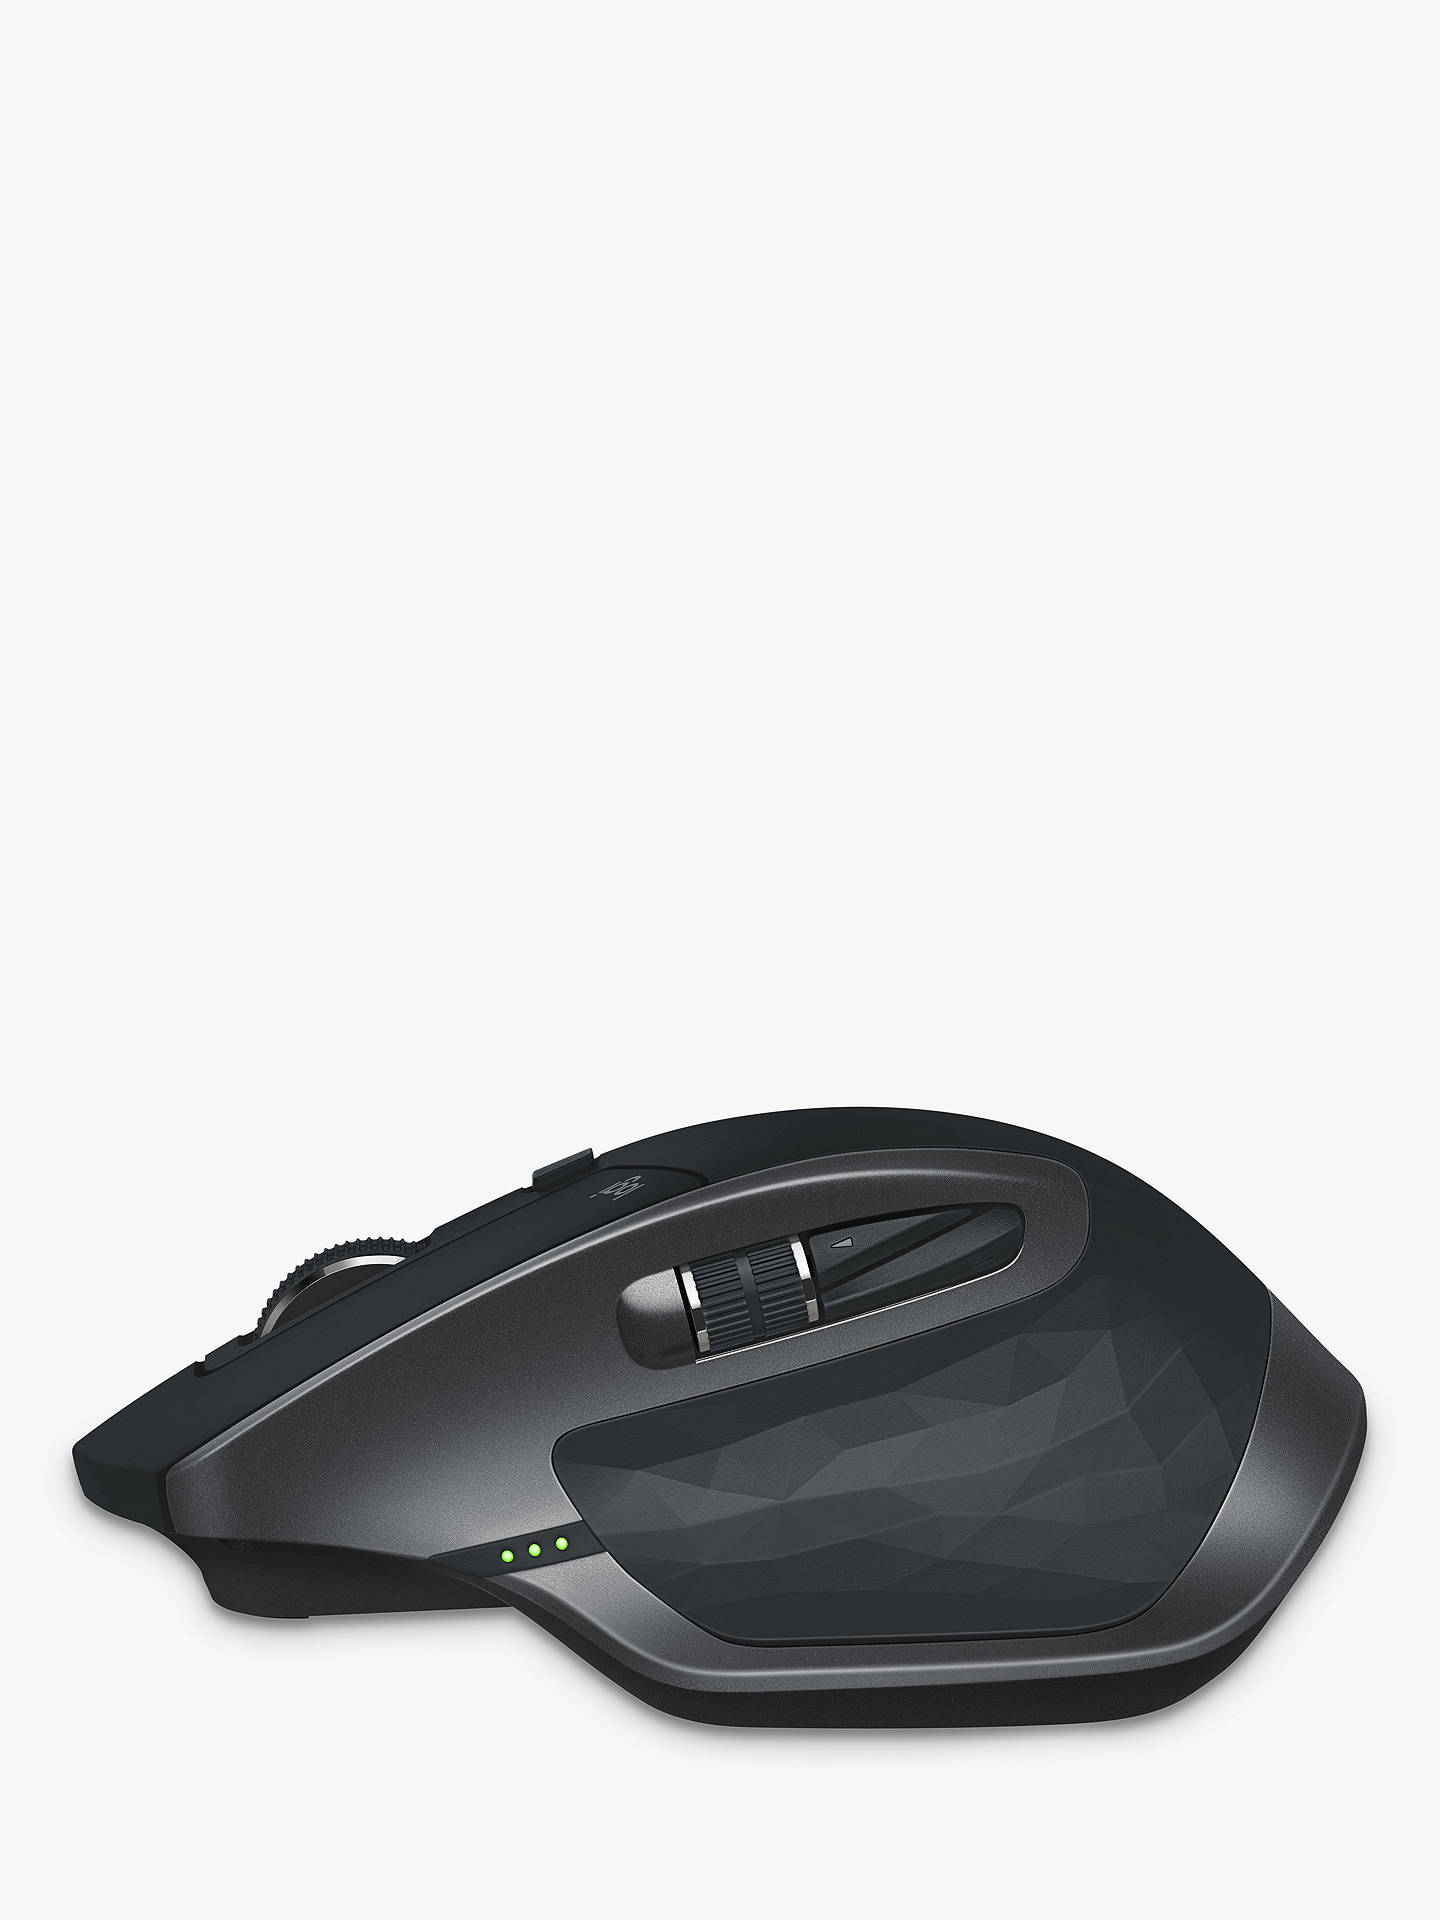 Logitech MX Master 2S Wireless Mouse, Black